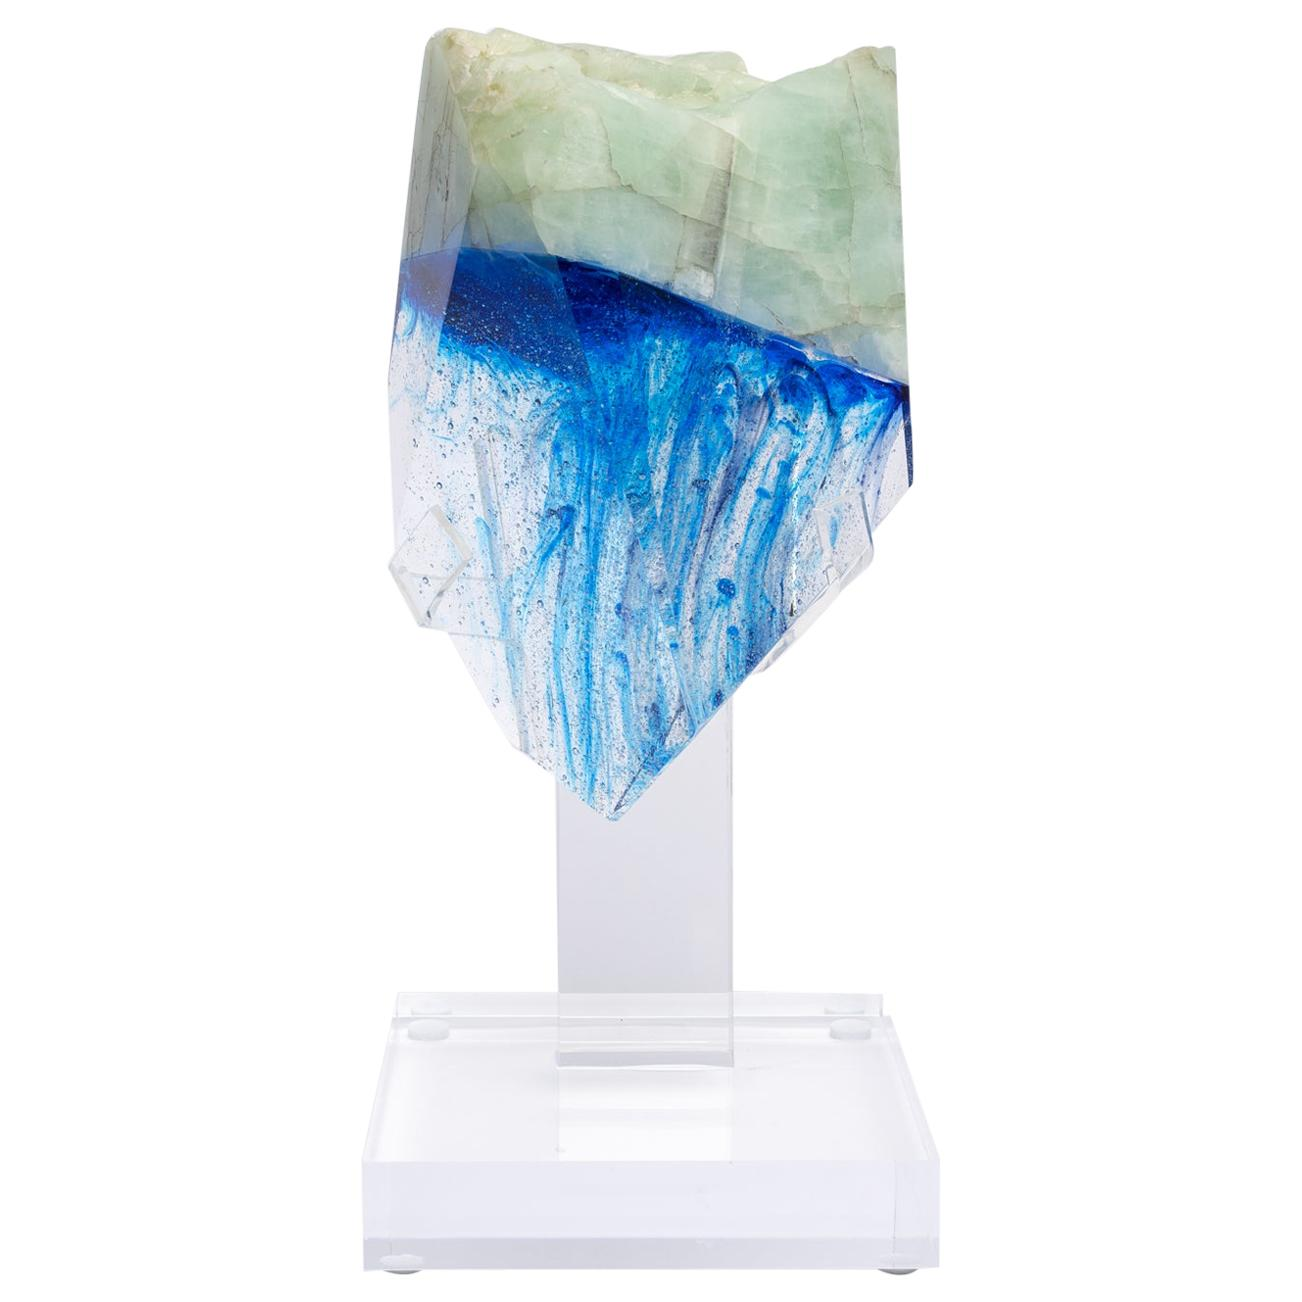 Brazilian Aquamarine and Blue Shade Organic Shape Glass Fusion Sculpture